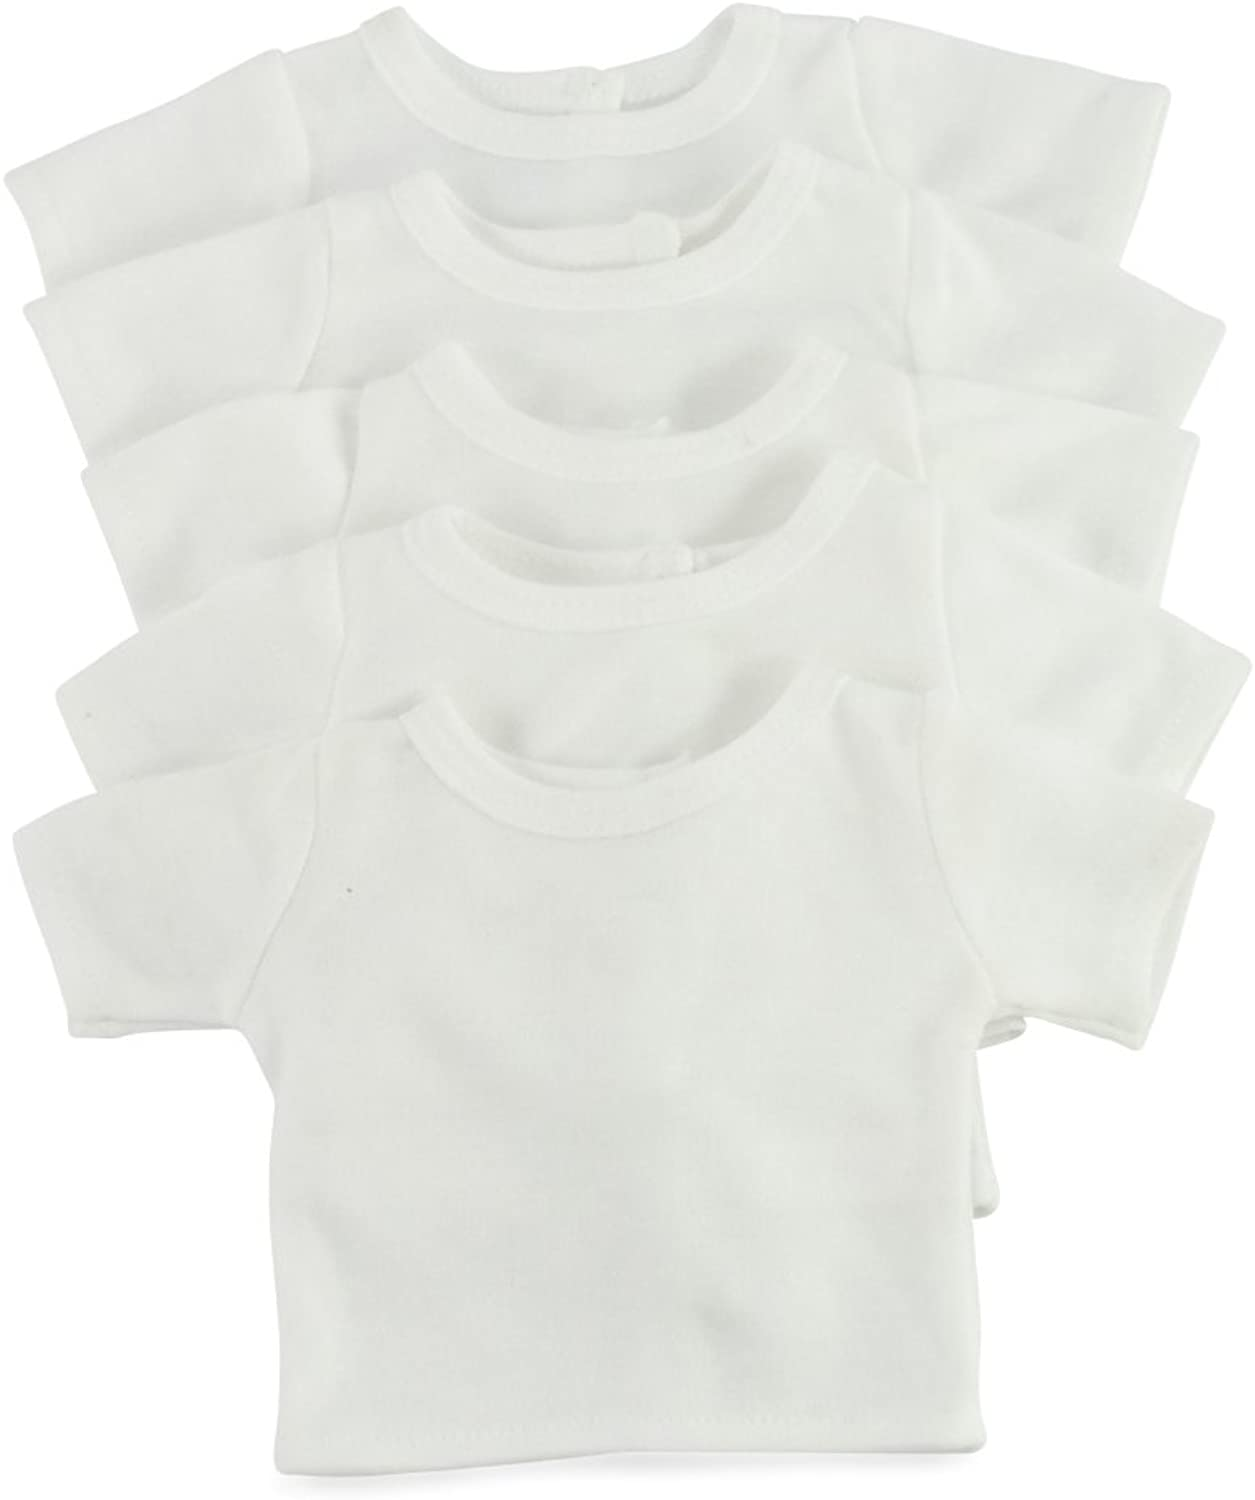 18 Inch Doll Clothes clothing Fits American Girl Dolls  Value Pack Plain White Tshirts 18  Outfit